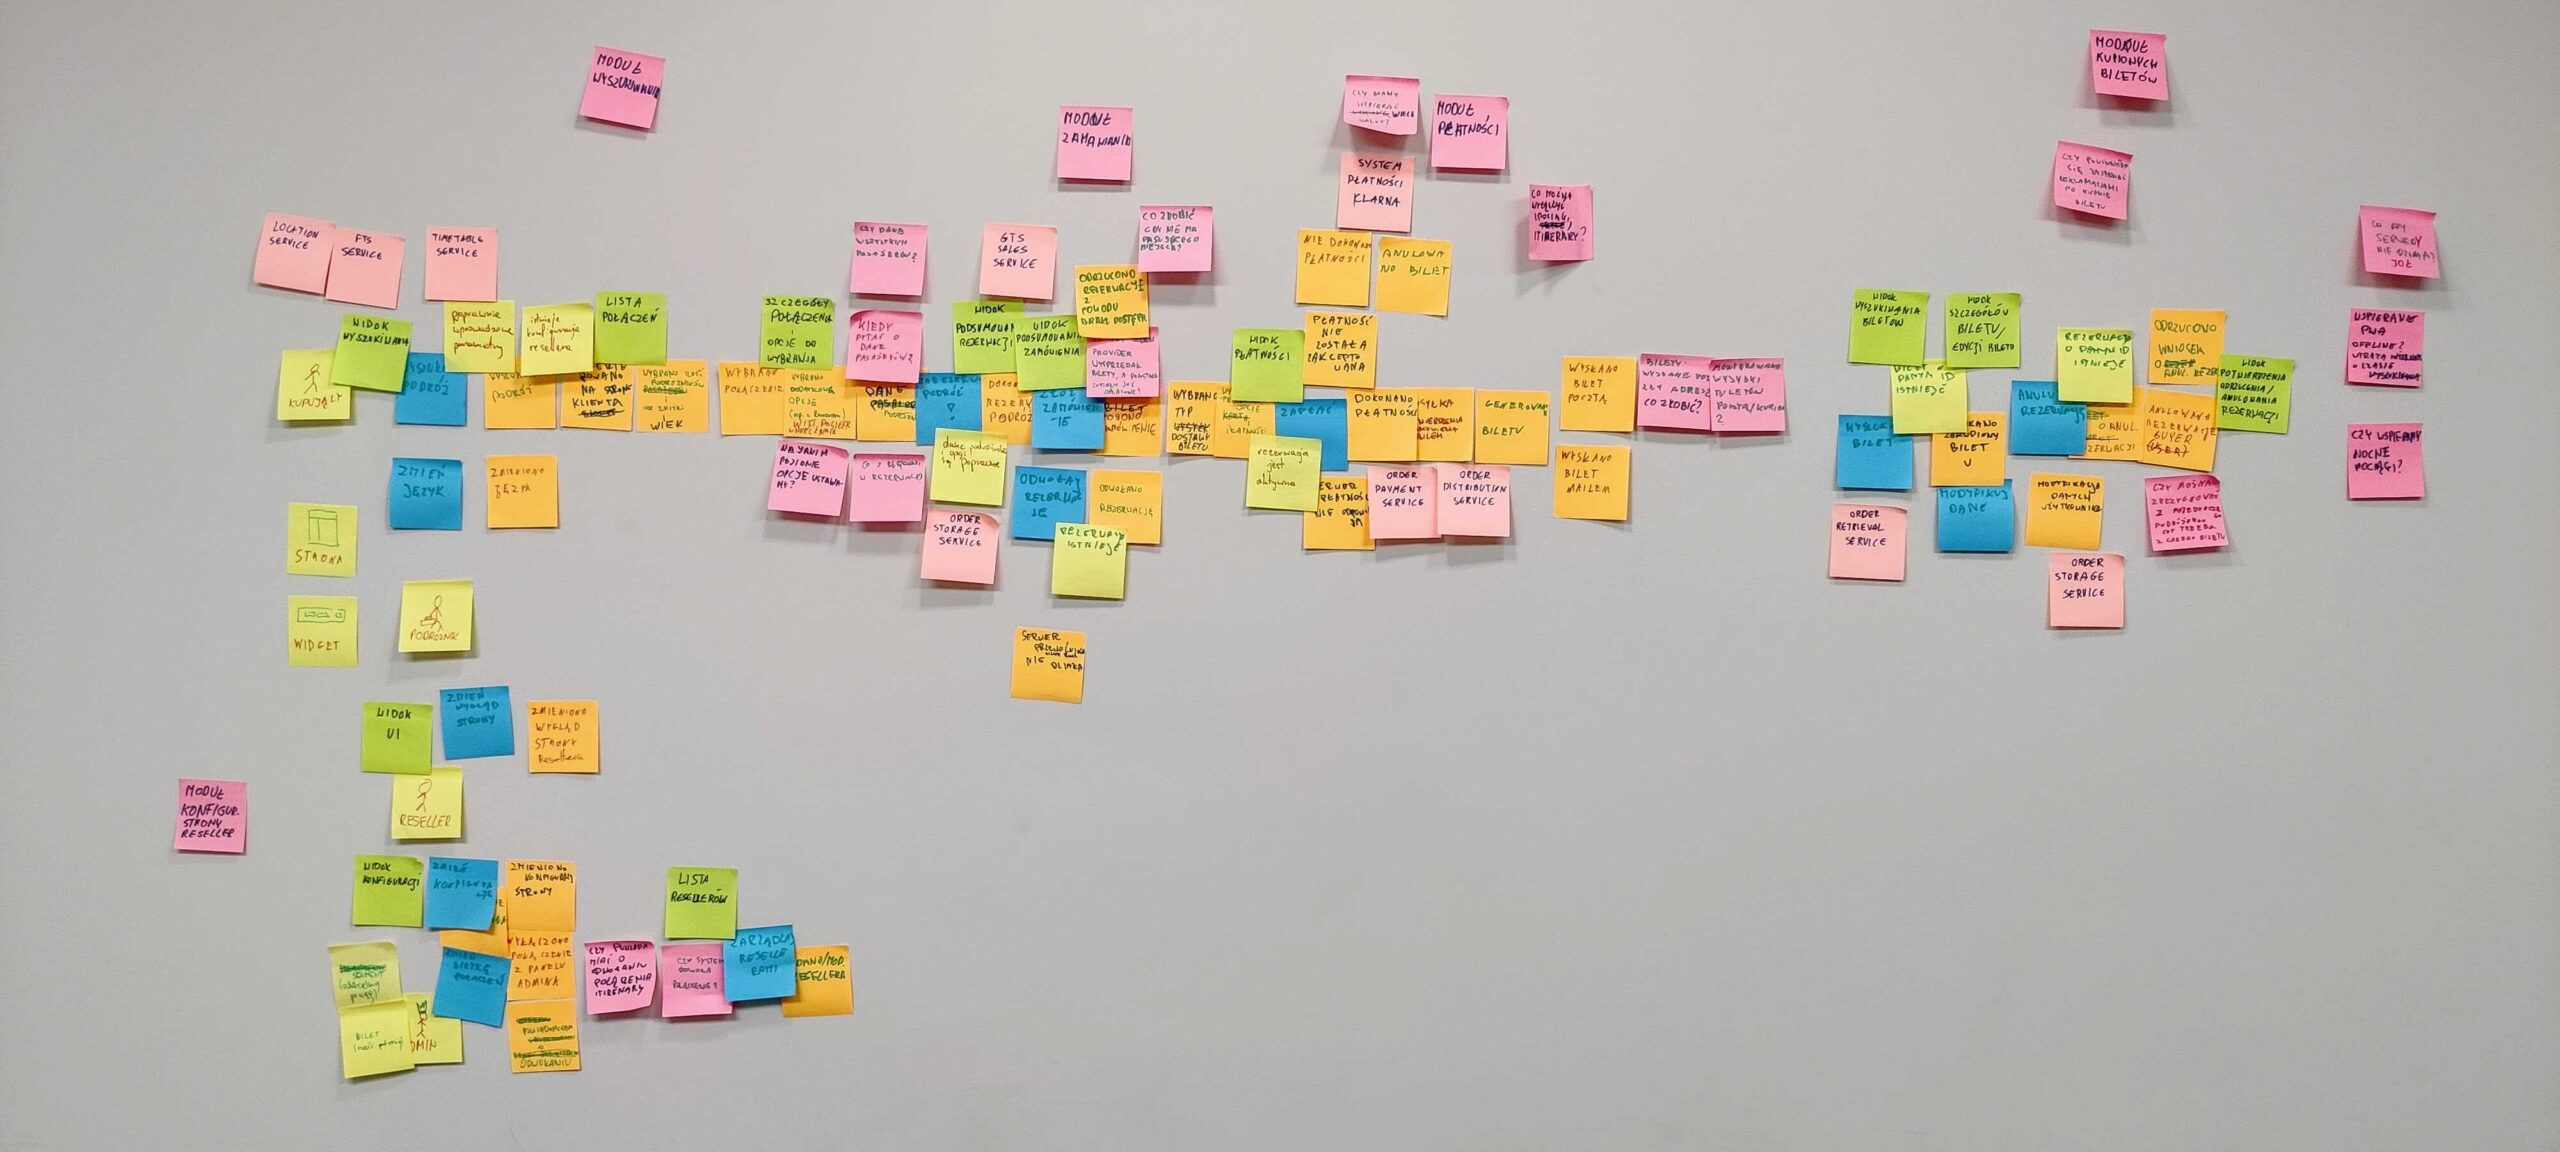 event-storming